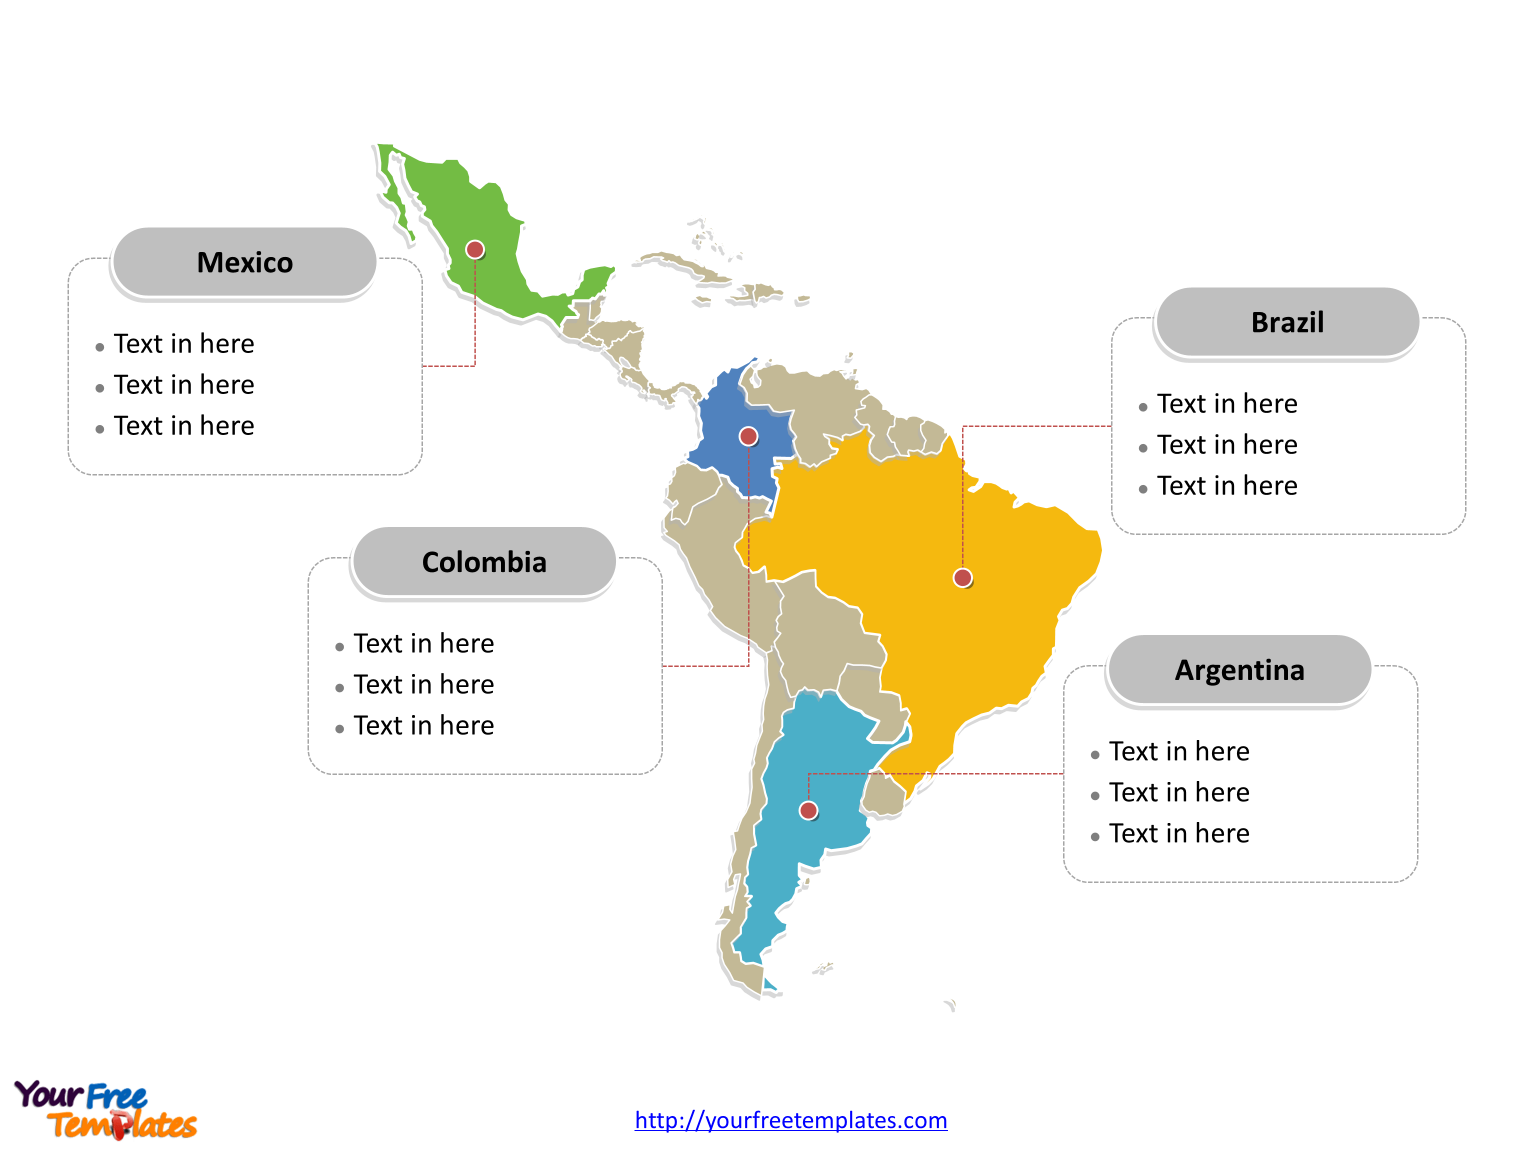 Map of Latin America with political division and major Countries labeled on the Blank Latin America map free templates